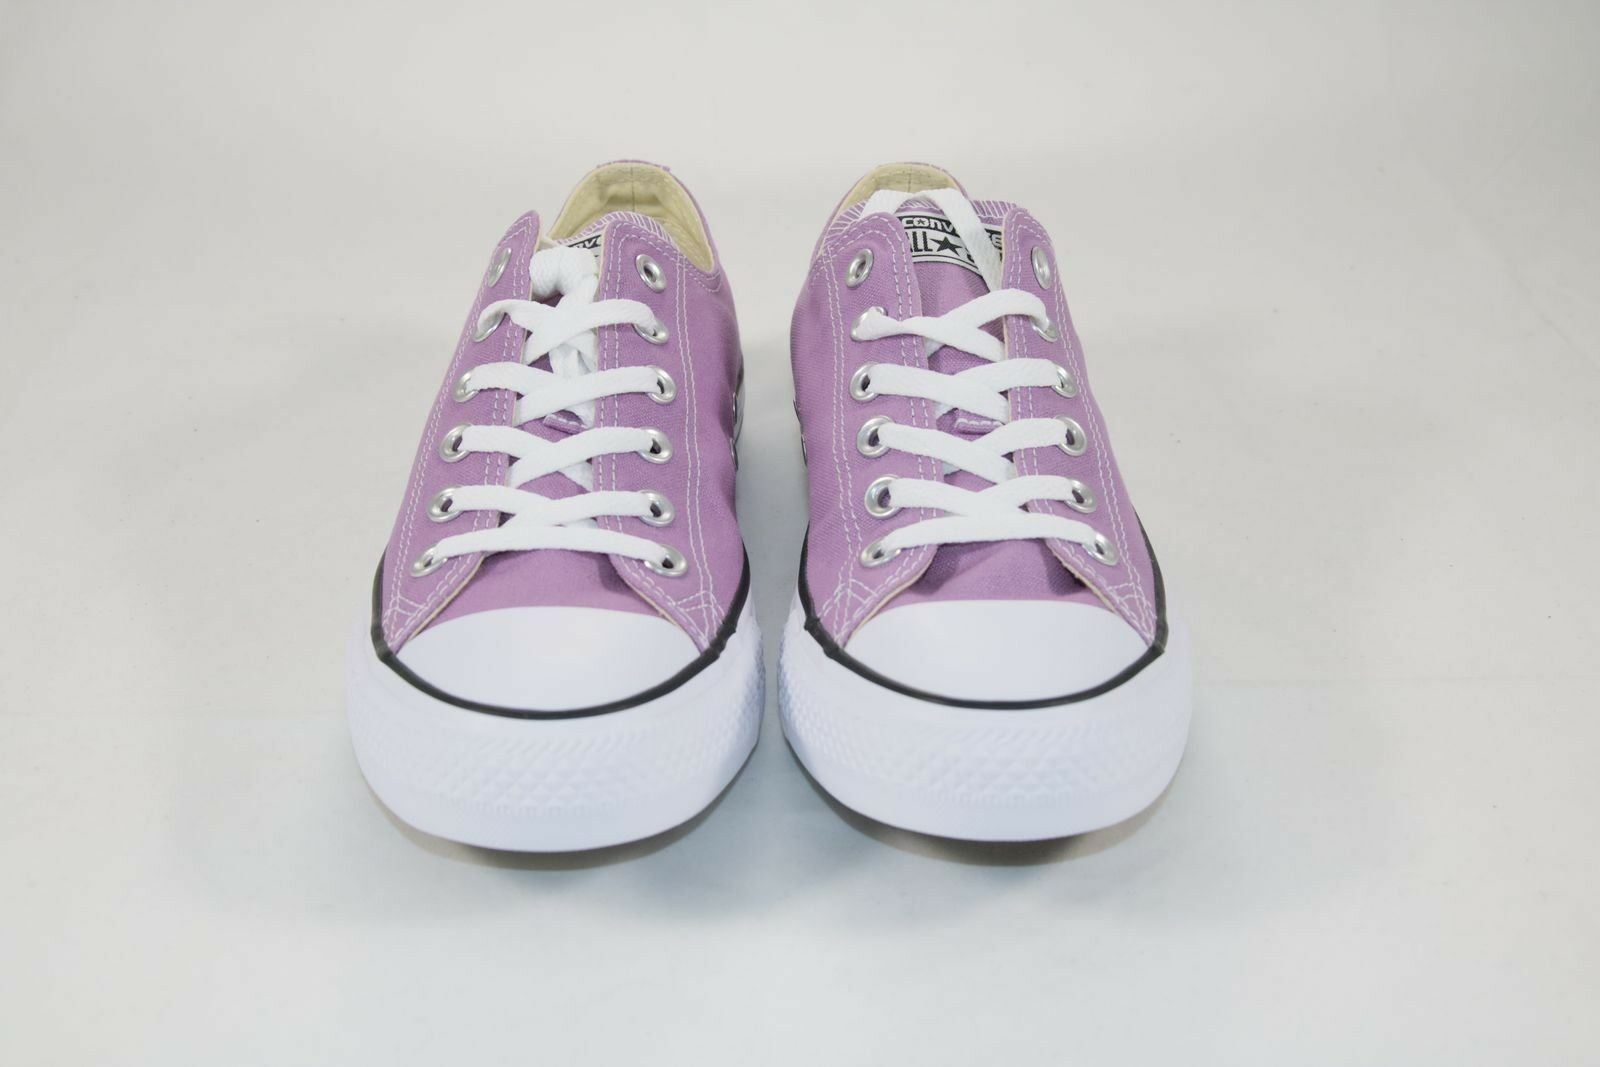 Shoes CONVERSE All-Star (Cod. SKU221) TG.43 - 11,5 USA canvas shoes pink